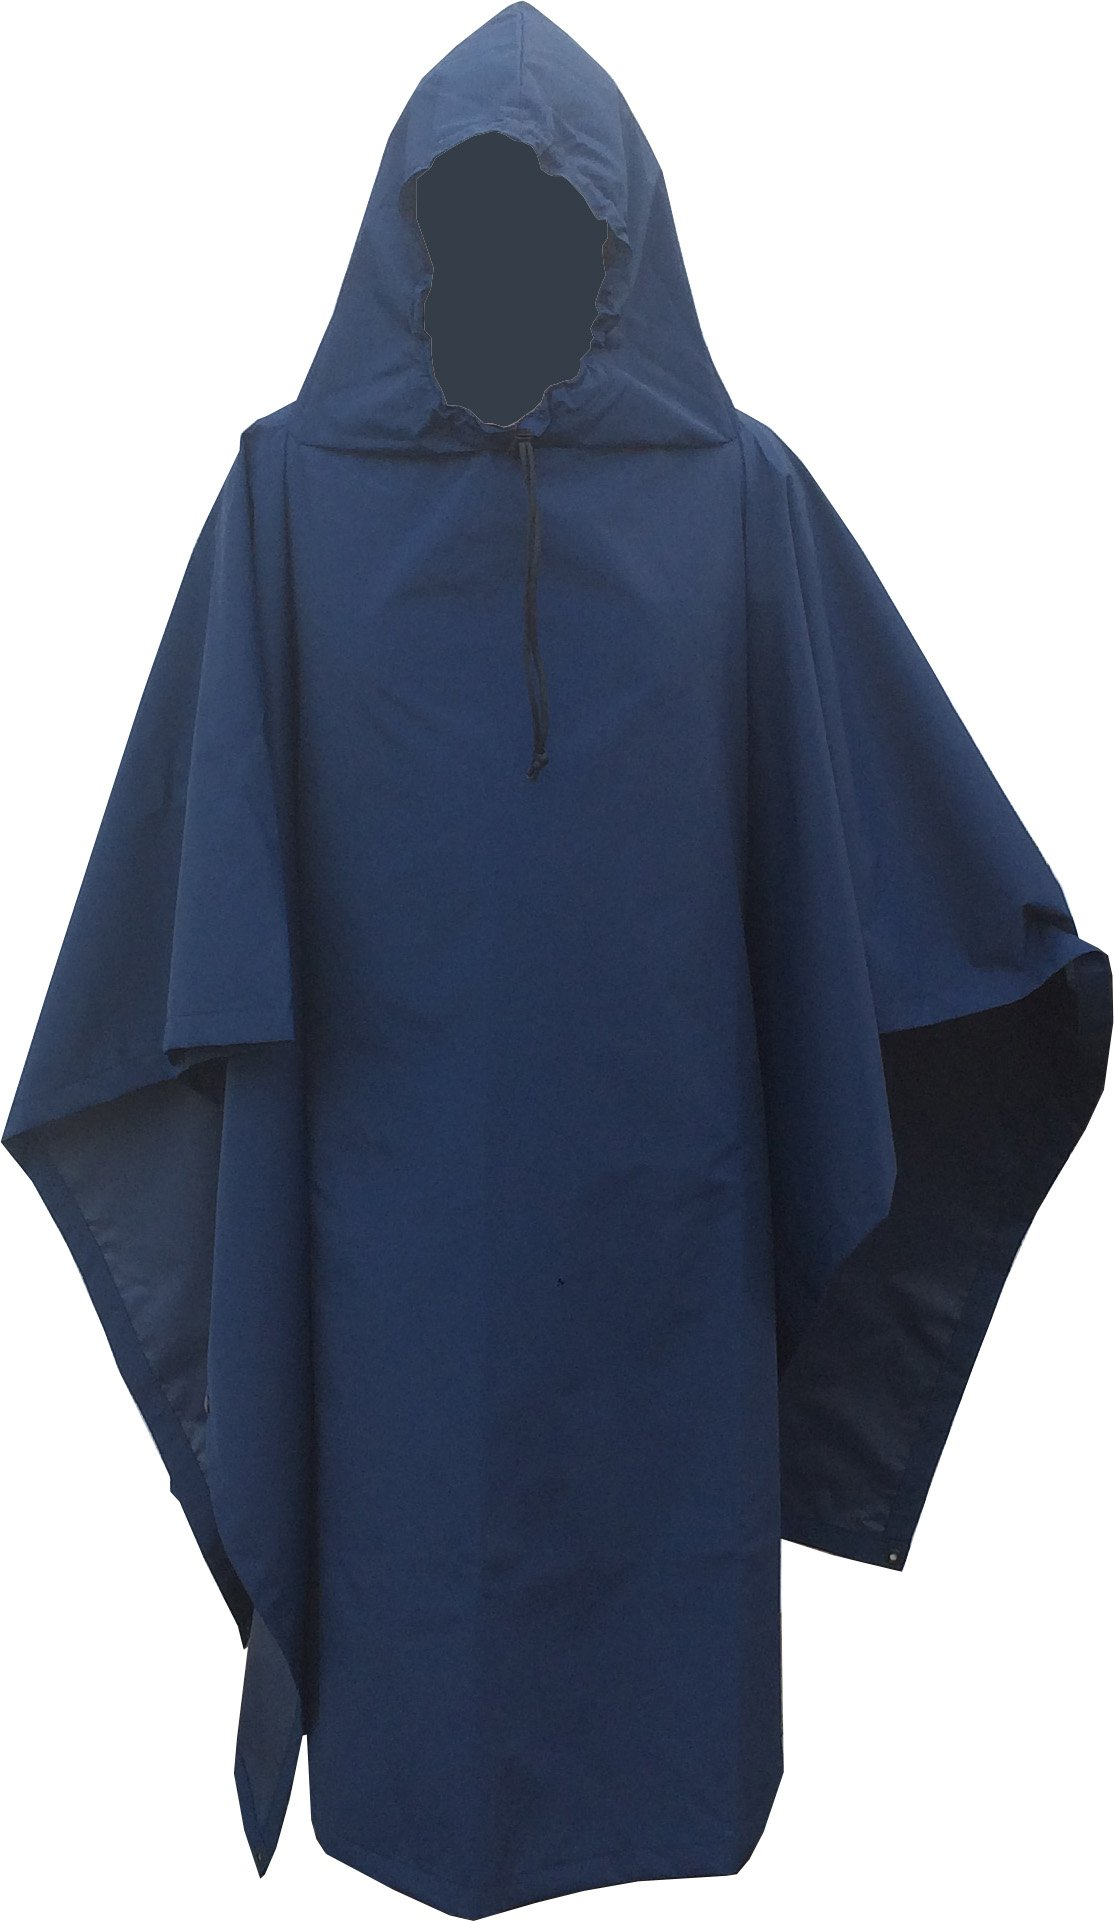 Waterproof 200D Hooded Nylon Poncho size: 55 x 90'' Made in U.S.A. (Navy)